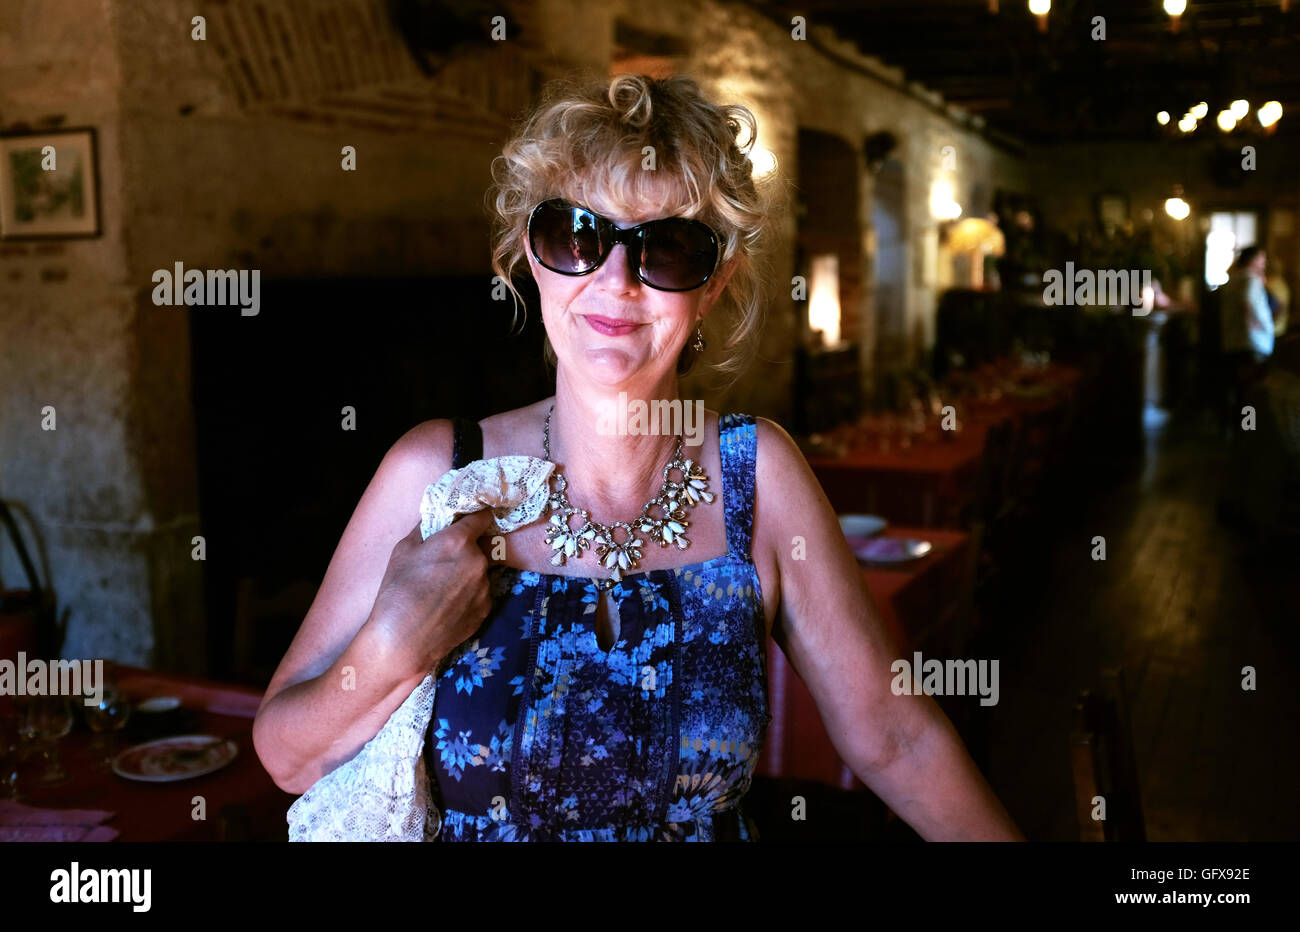 afcfa0cc620 Woman wearing sunglasses indoors at a restaurant in France Stock ...